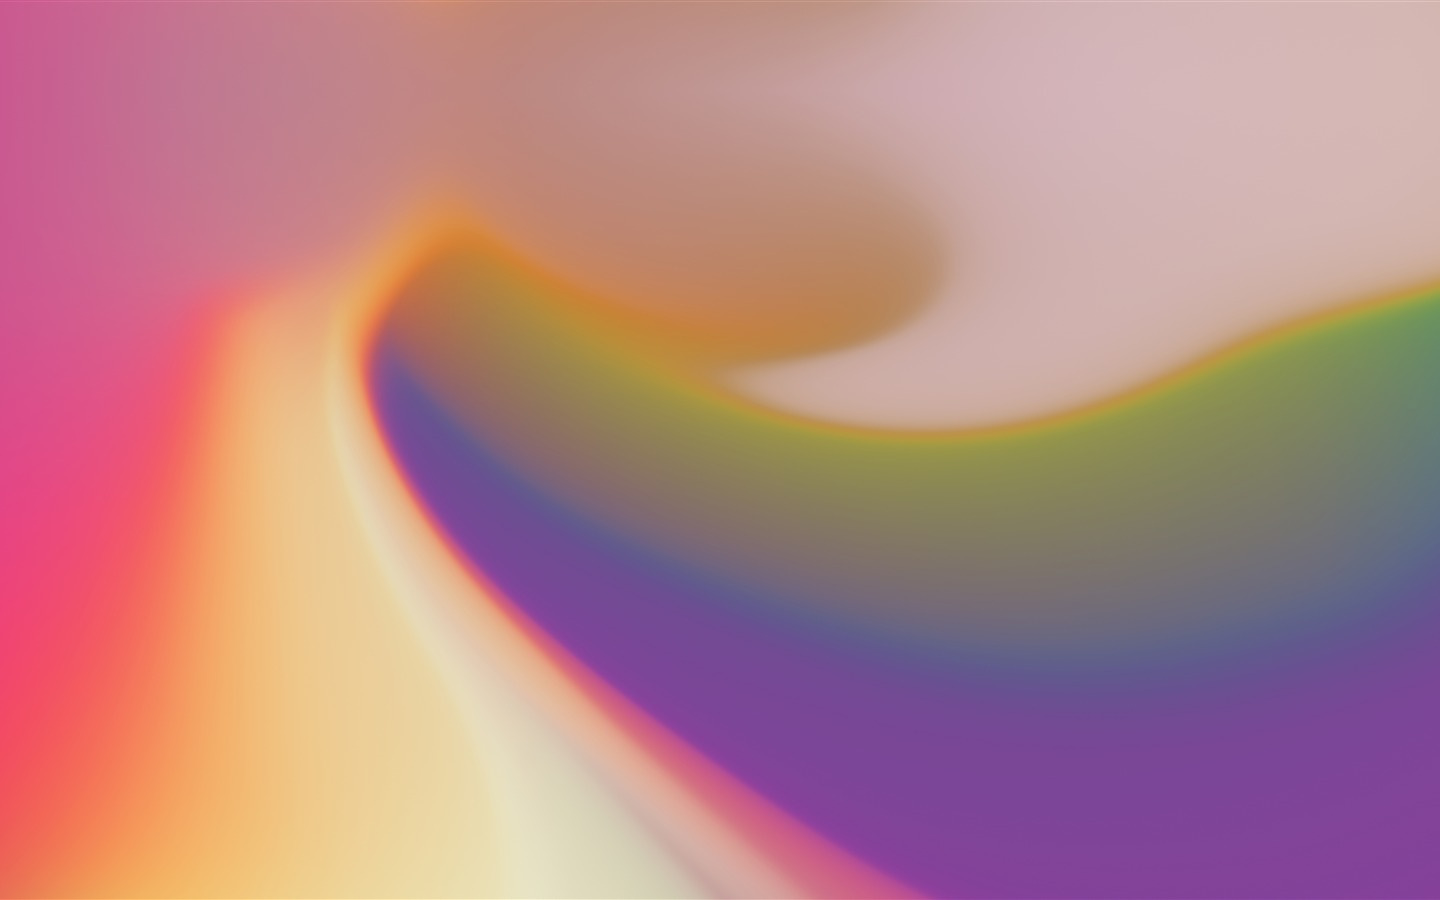 Gradients color creamy vivid abstract design - 1440x900 wallpaper download